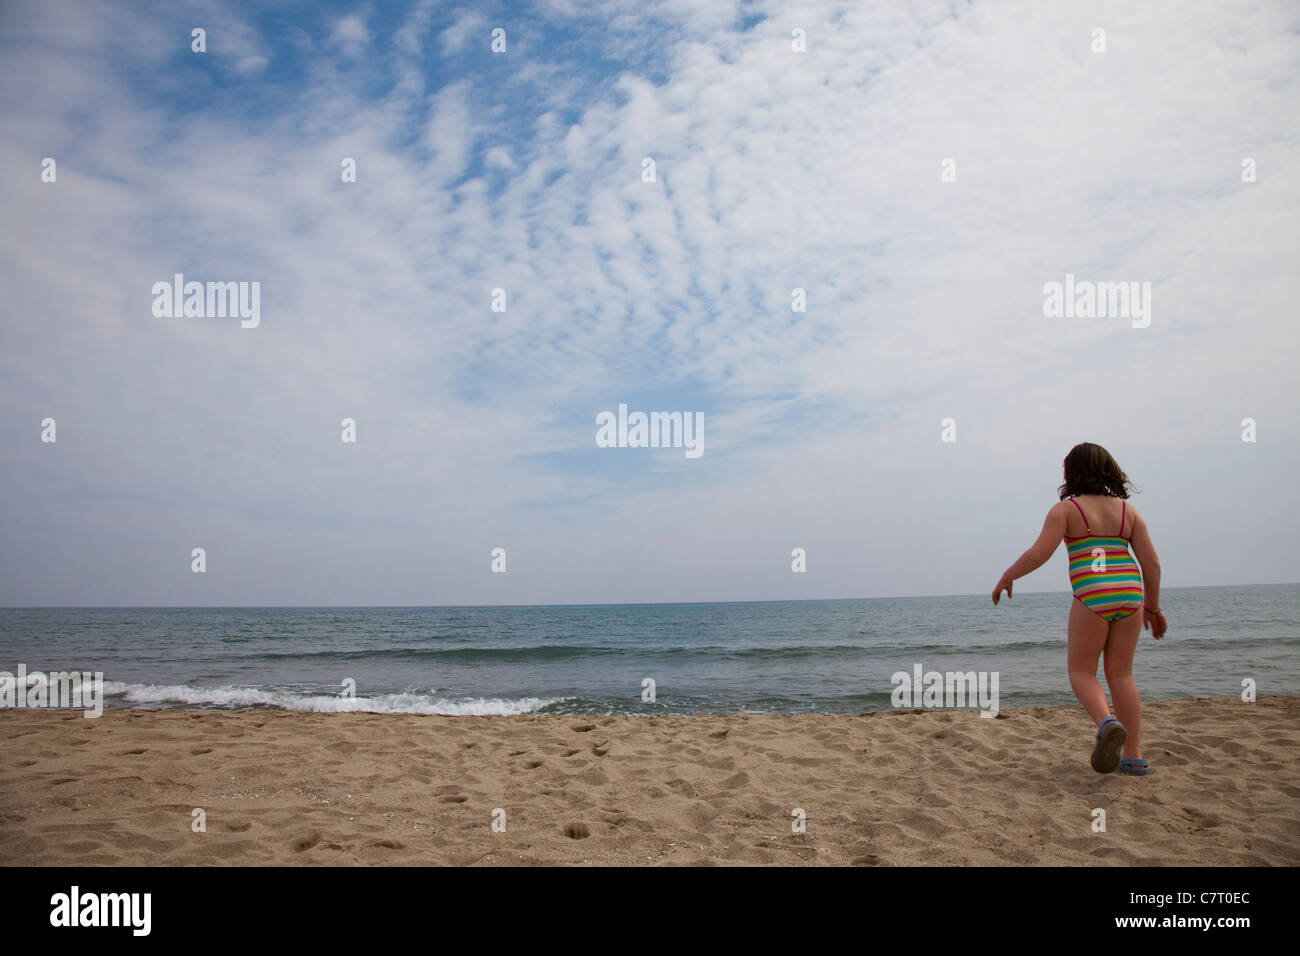 Canet Stock Photos Canet Stock Images Alamy